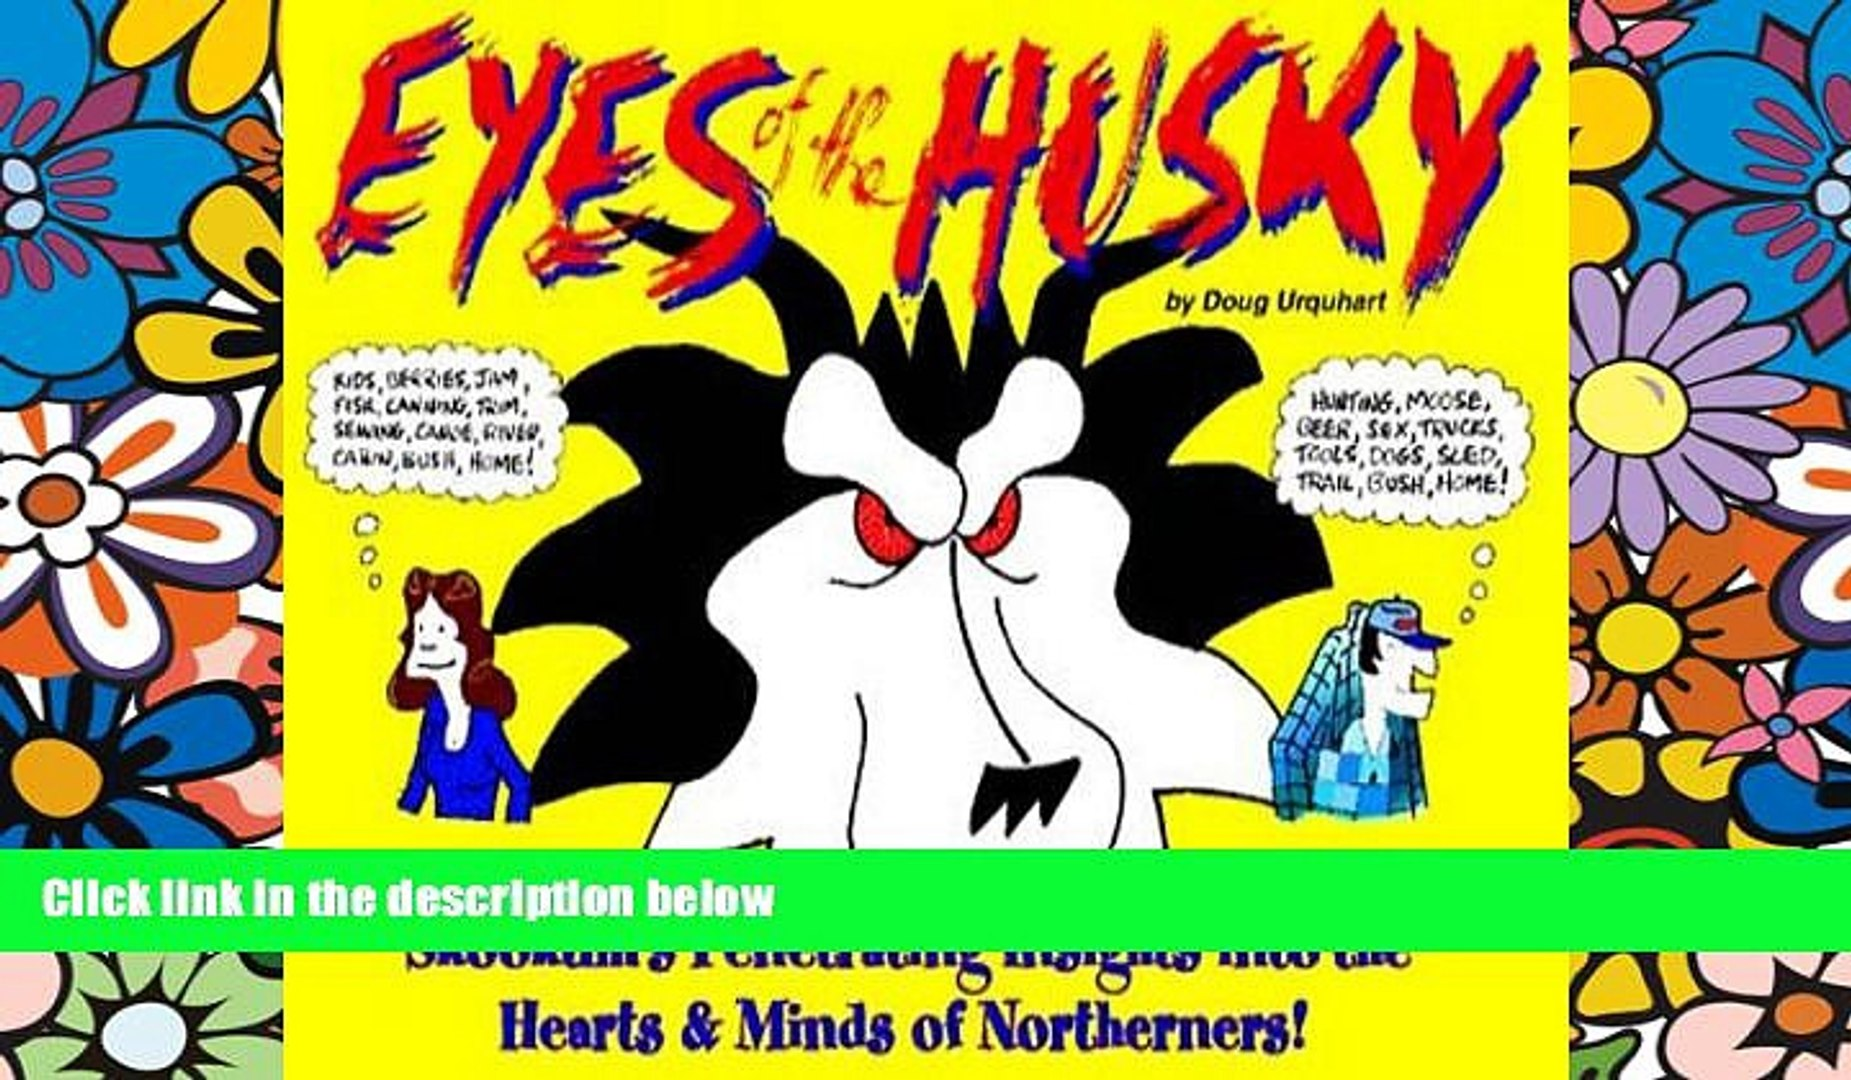 Ebook deals  Eyes of the Husky: Skookum s Penetrating Insights Into the Hearts   Minds of